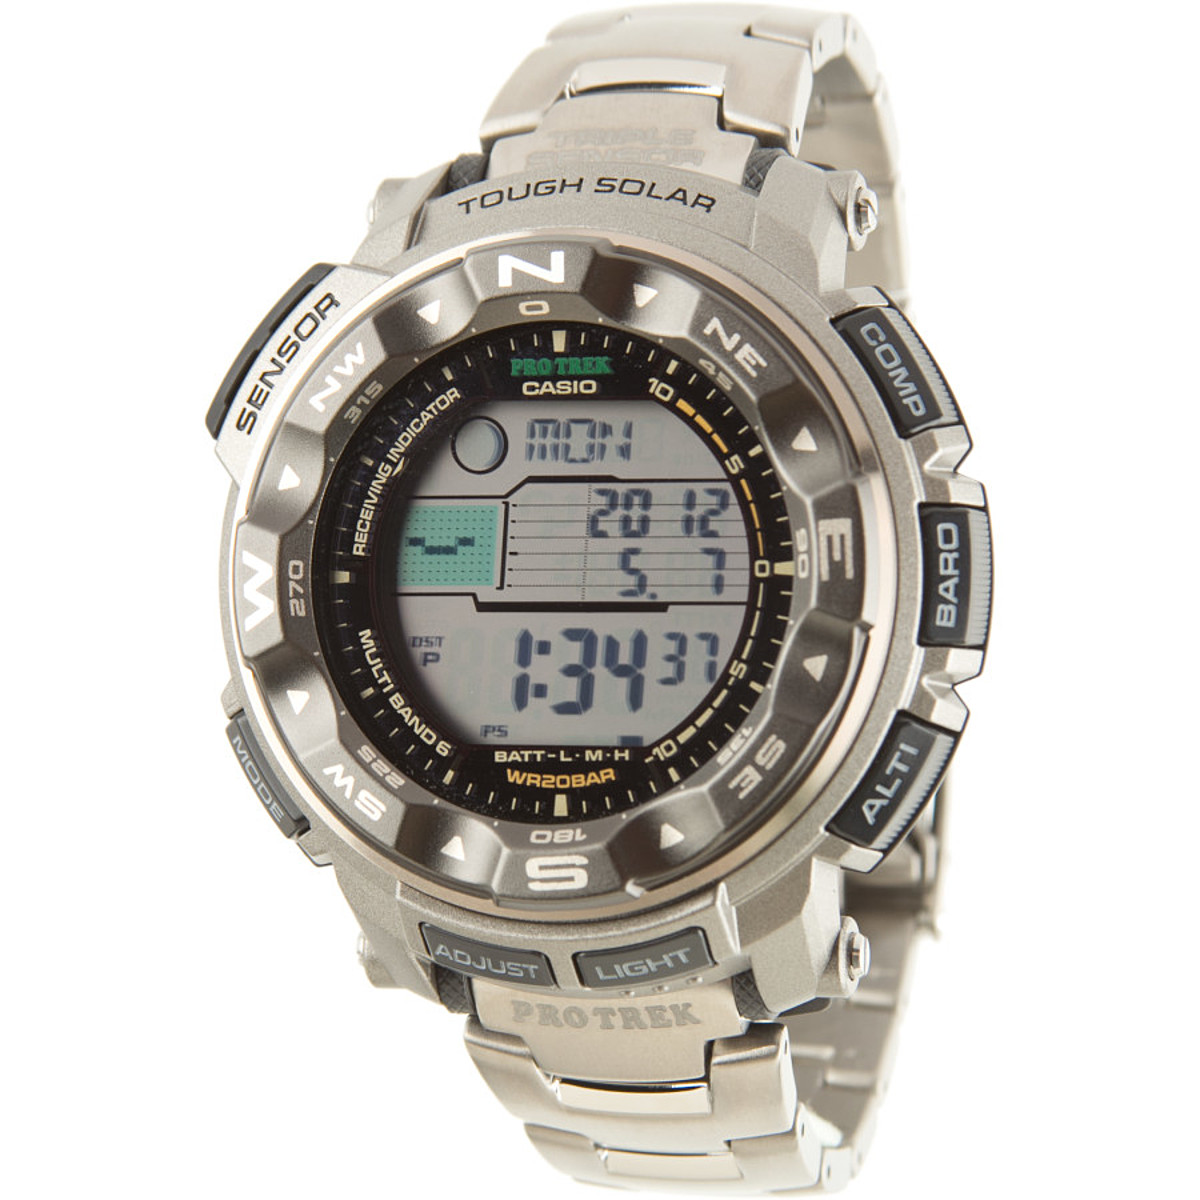 photo: Casio PRW2500T-7 compass watch